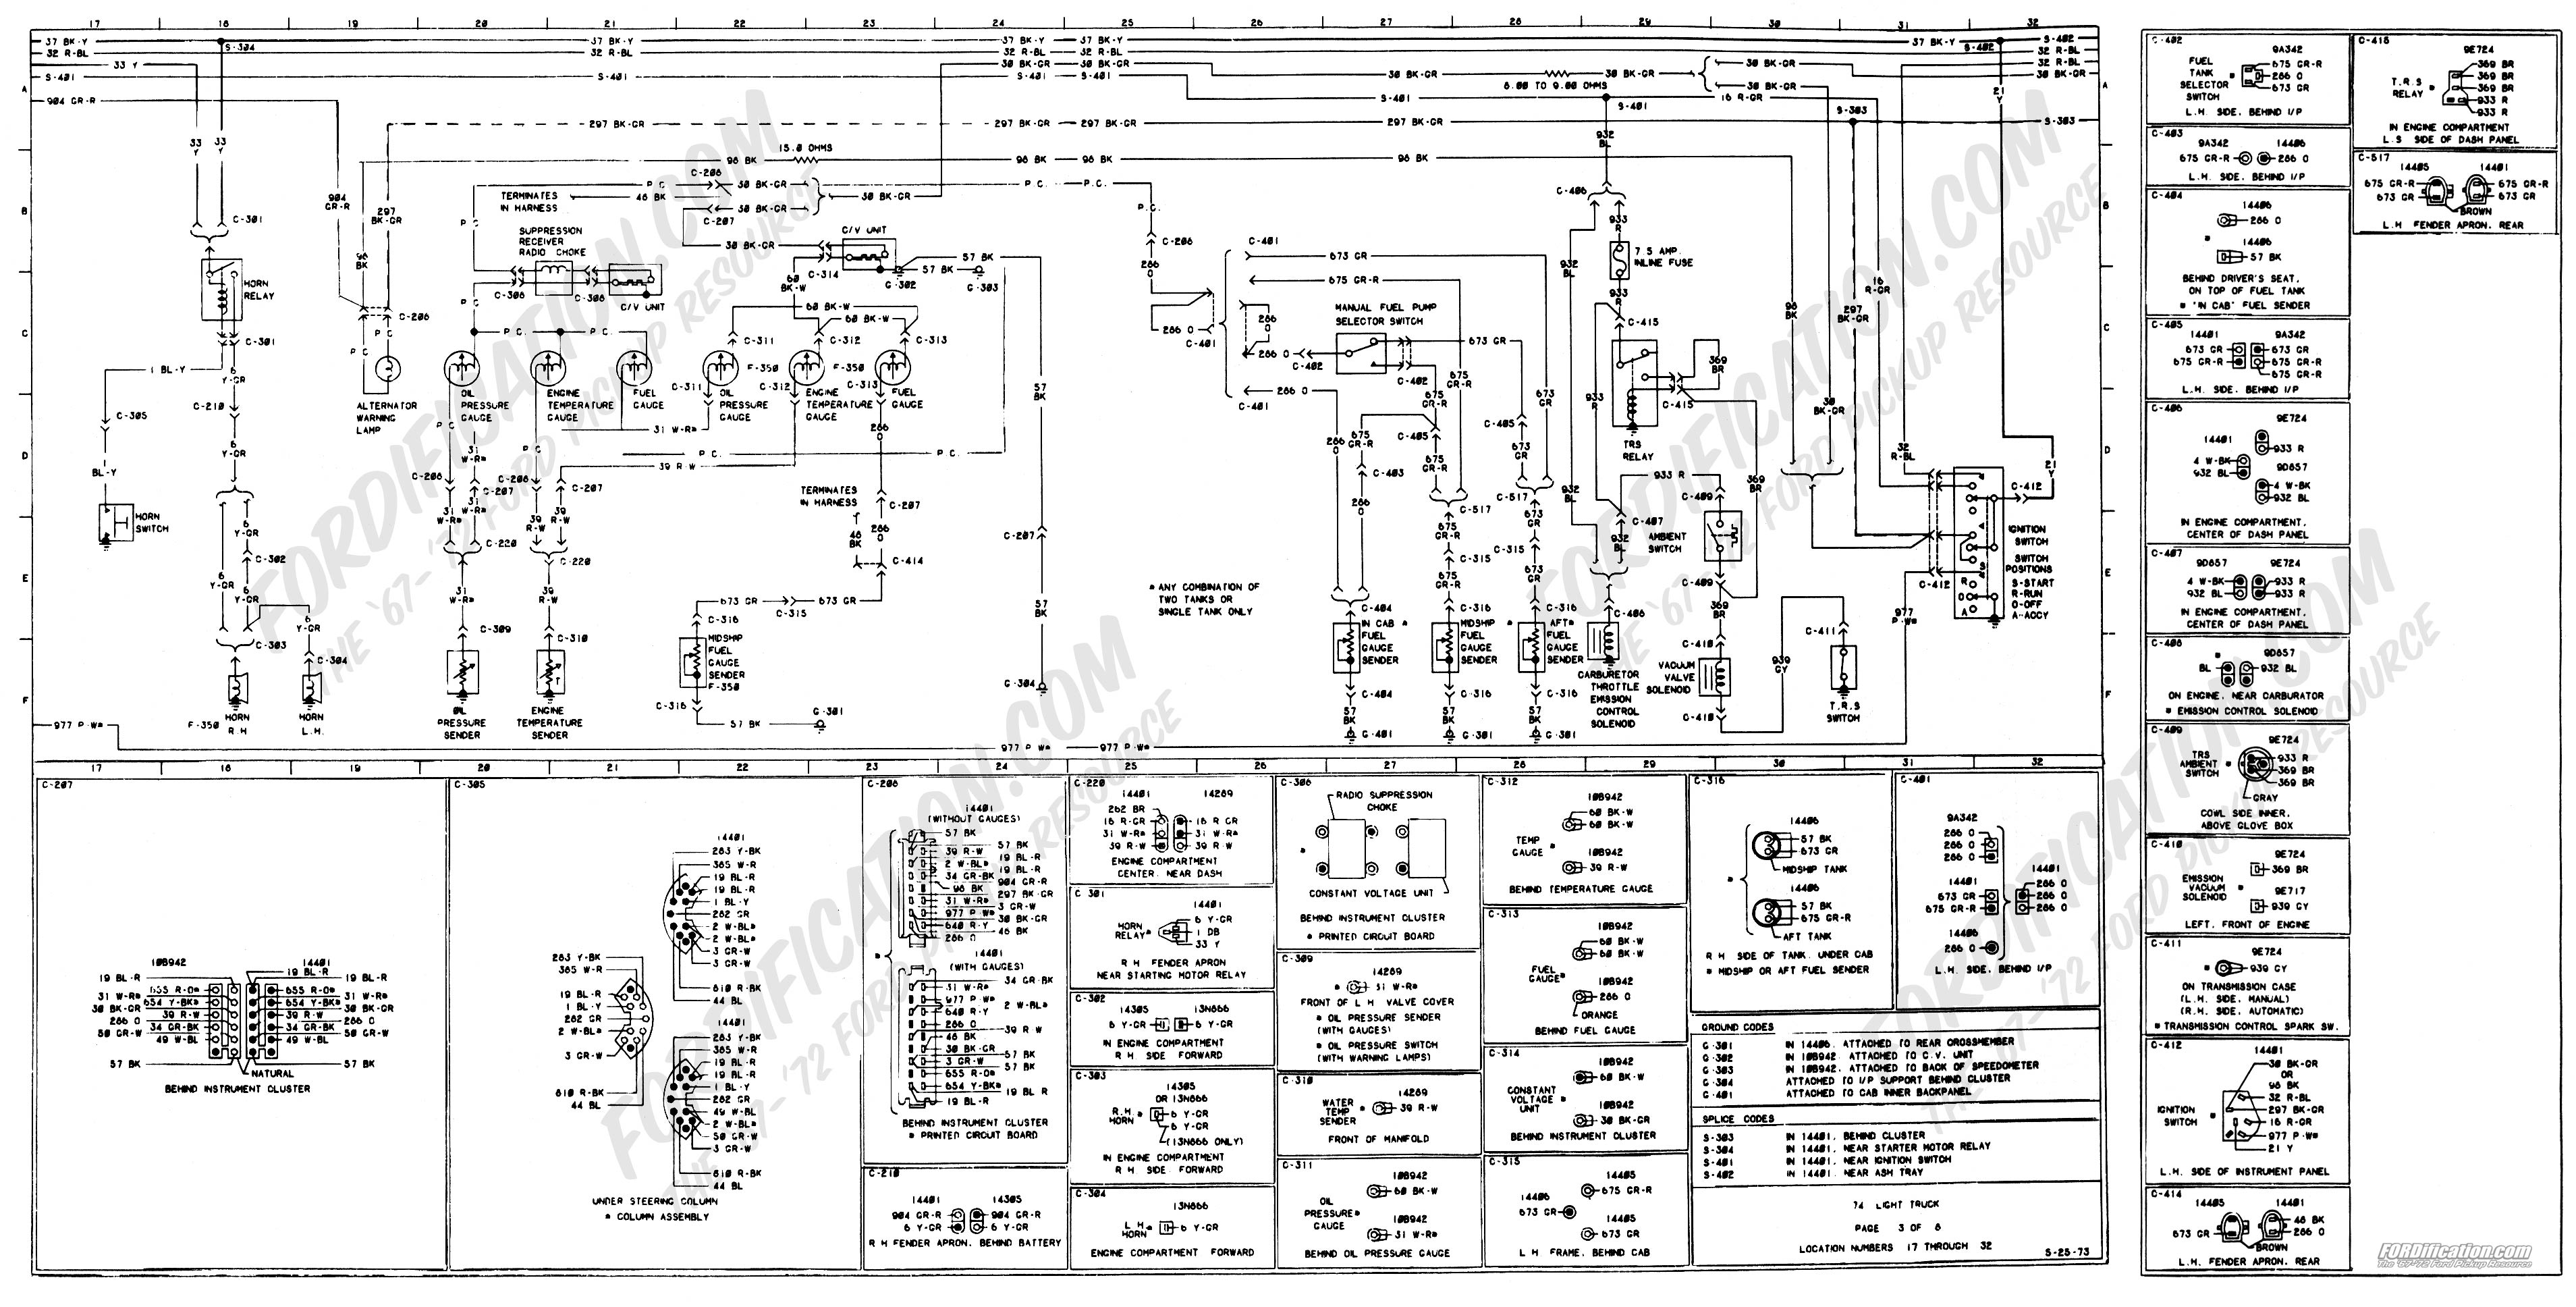 wiring_74master_3of8 1973 1979 ford truck wiring diagrams & schematics fordification net 03 f350 wiring diagram at n-0.co